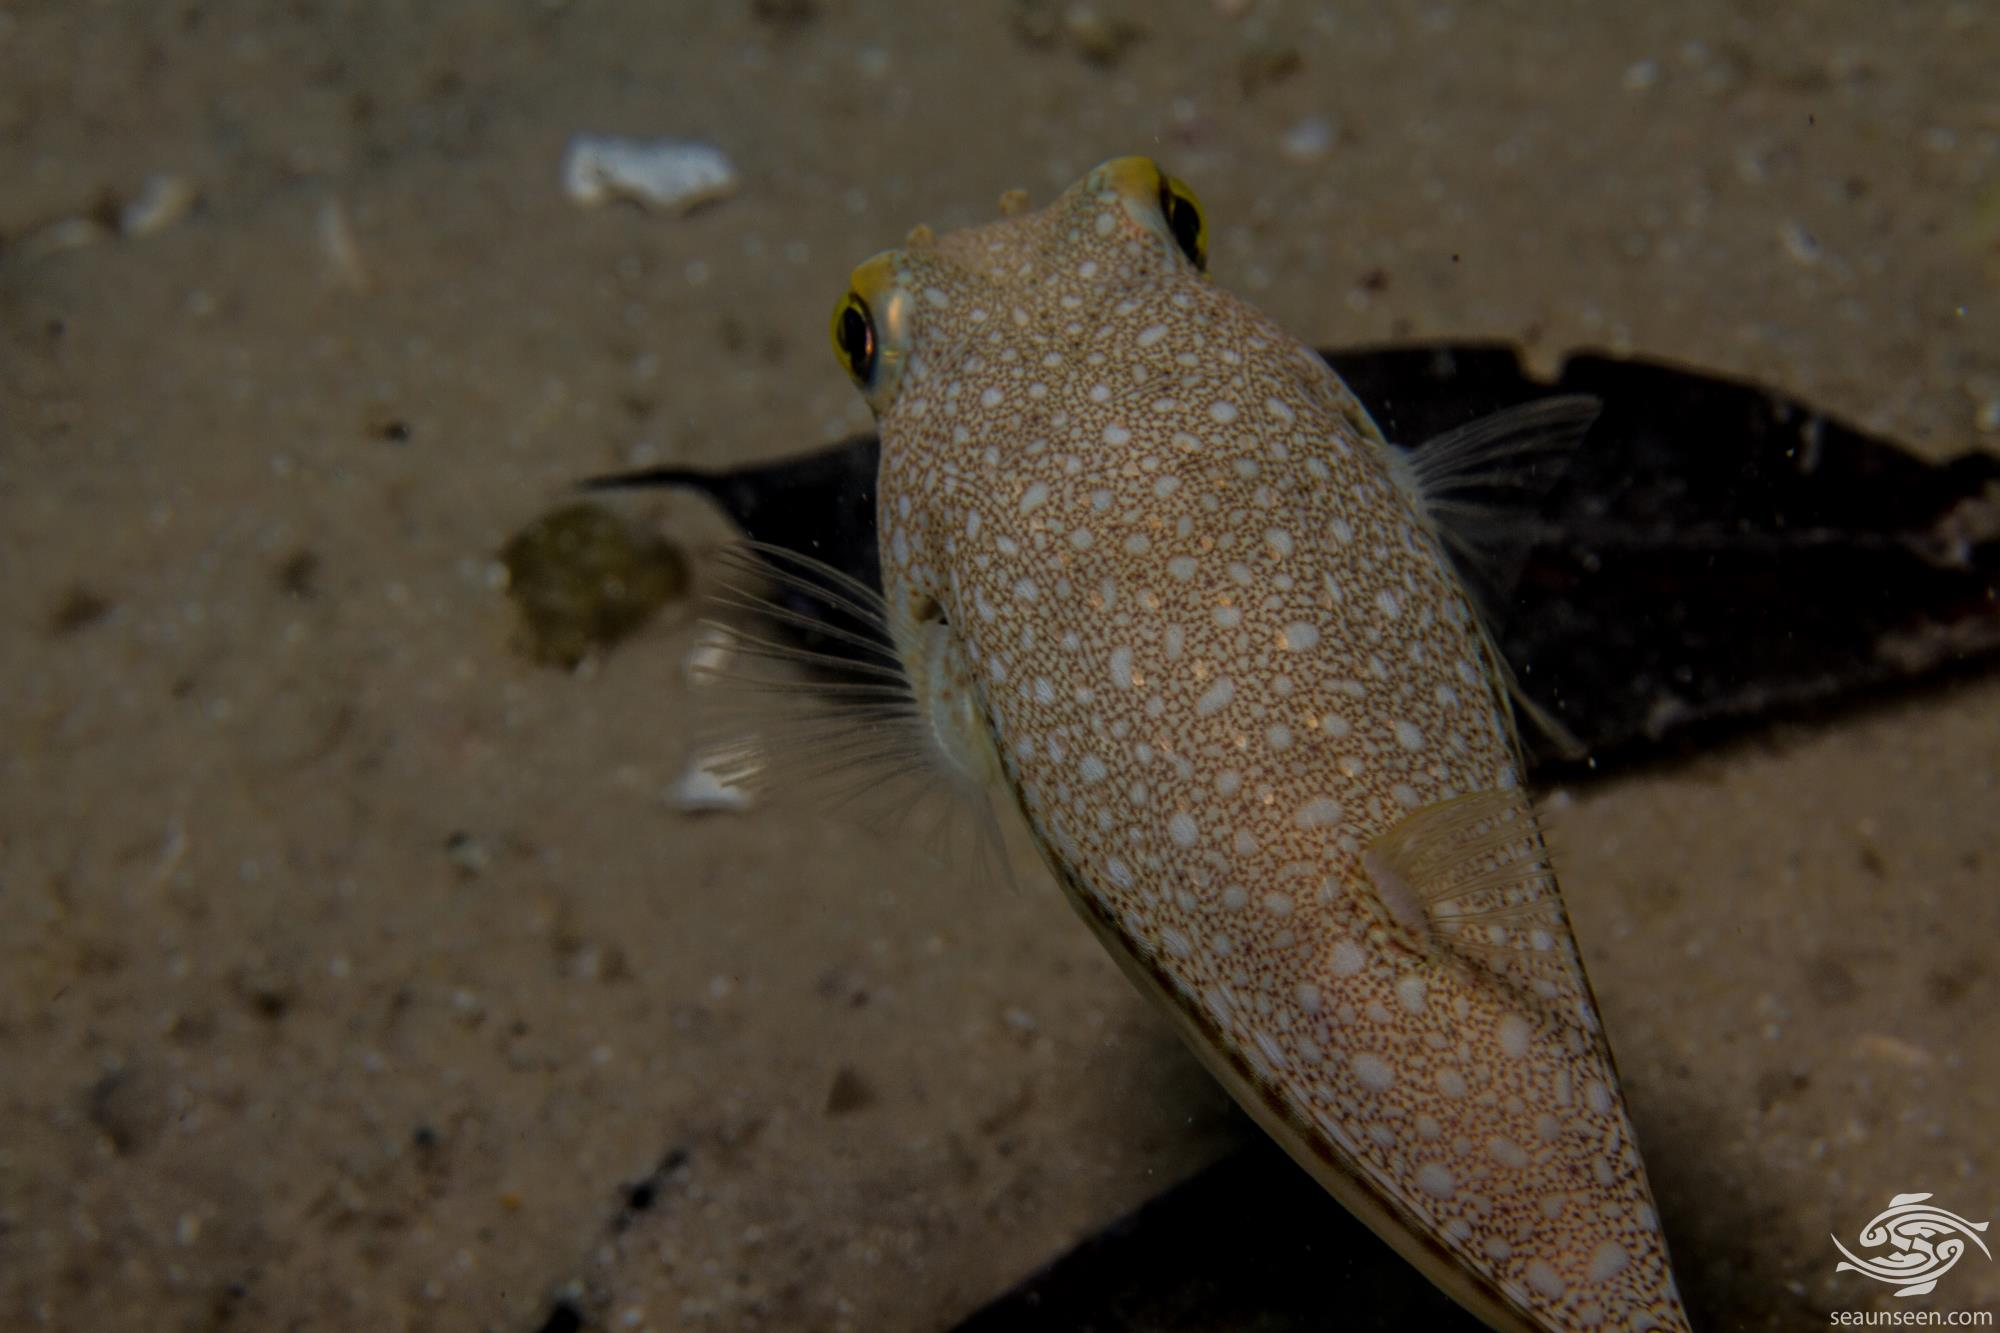 Yellowspotted Pufferfish (Torquigener flavimaculosus) is also known as the Studded Pufferfish